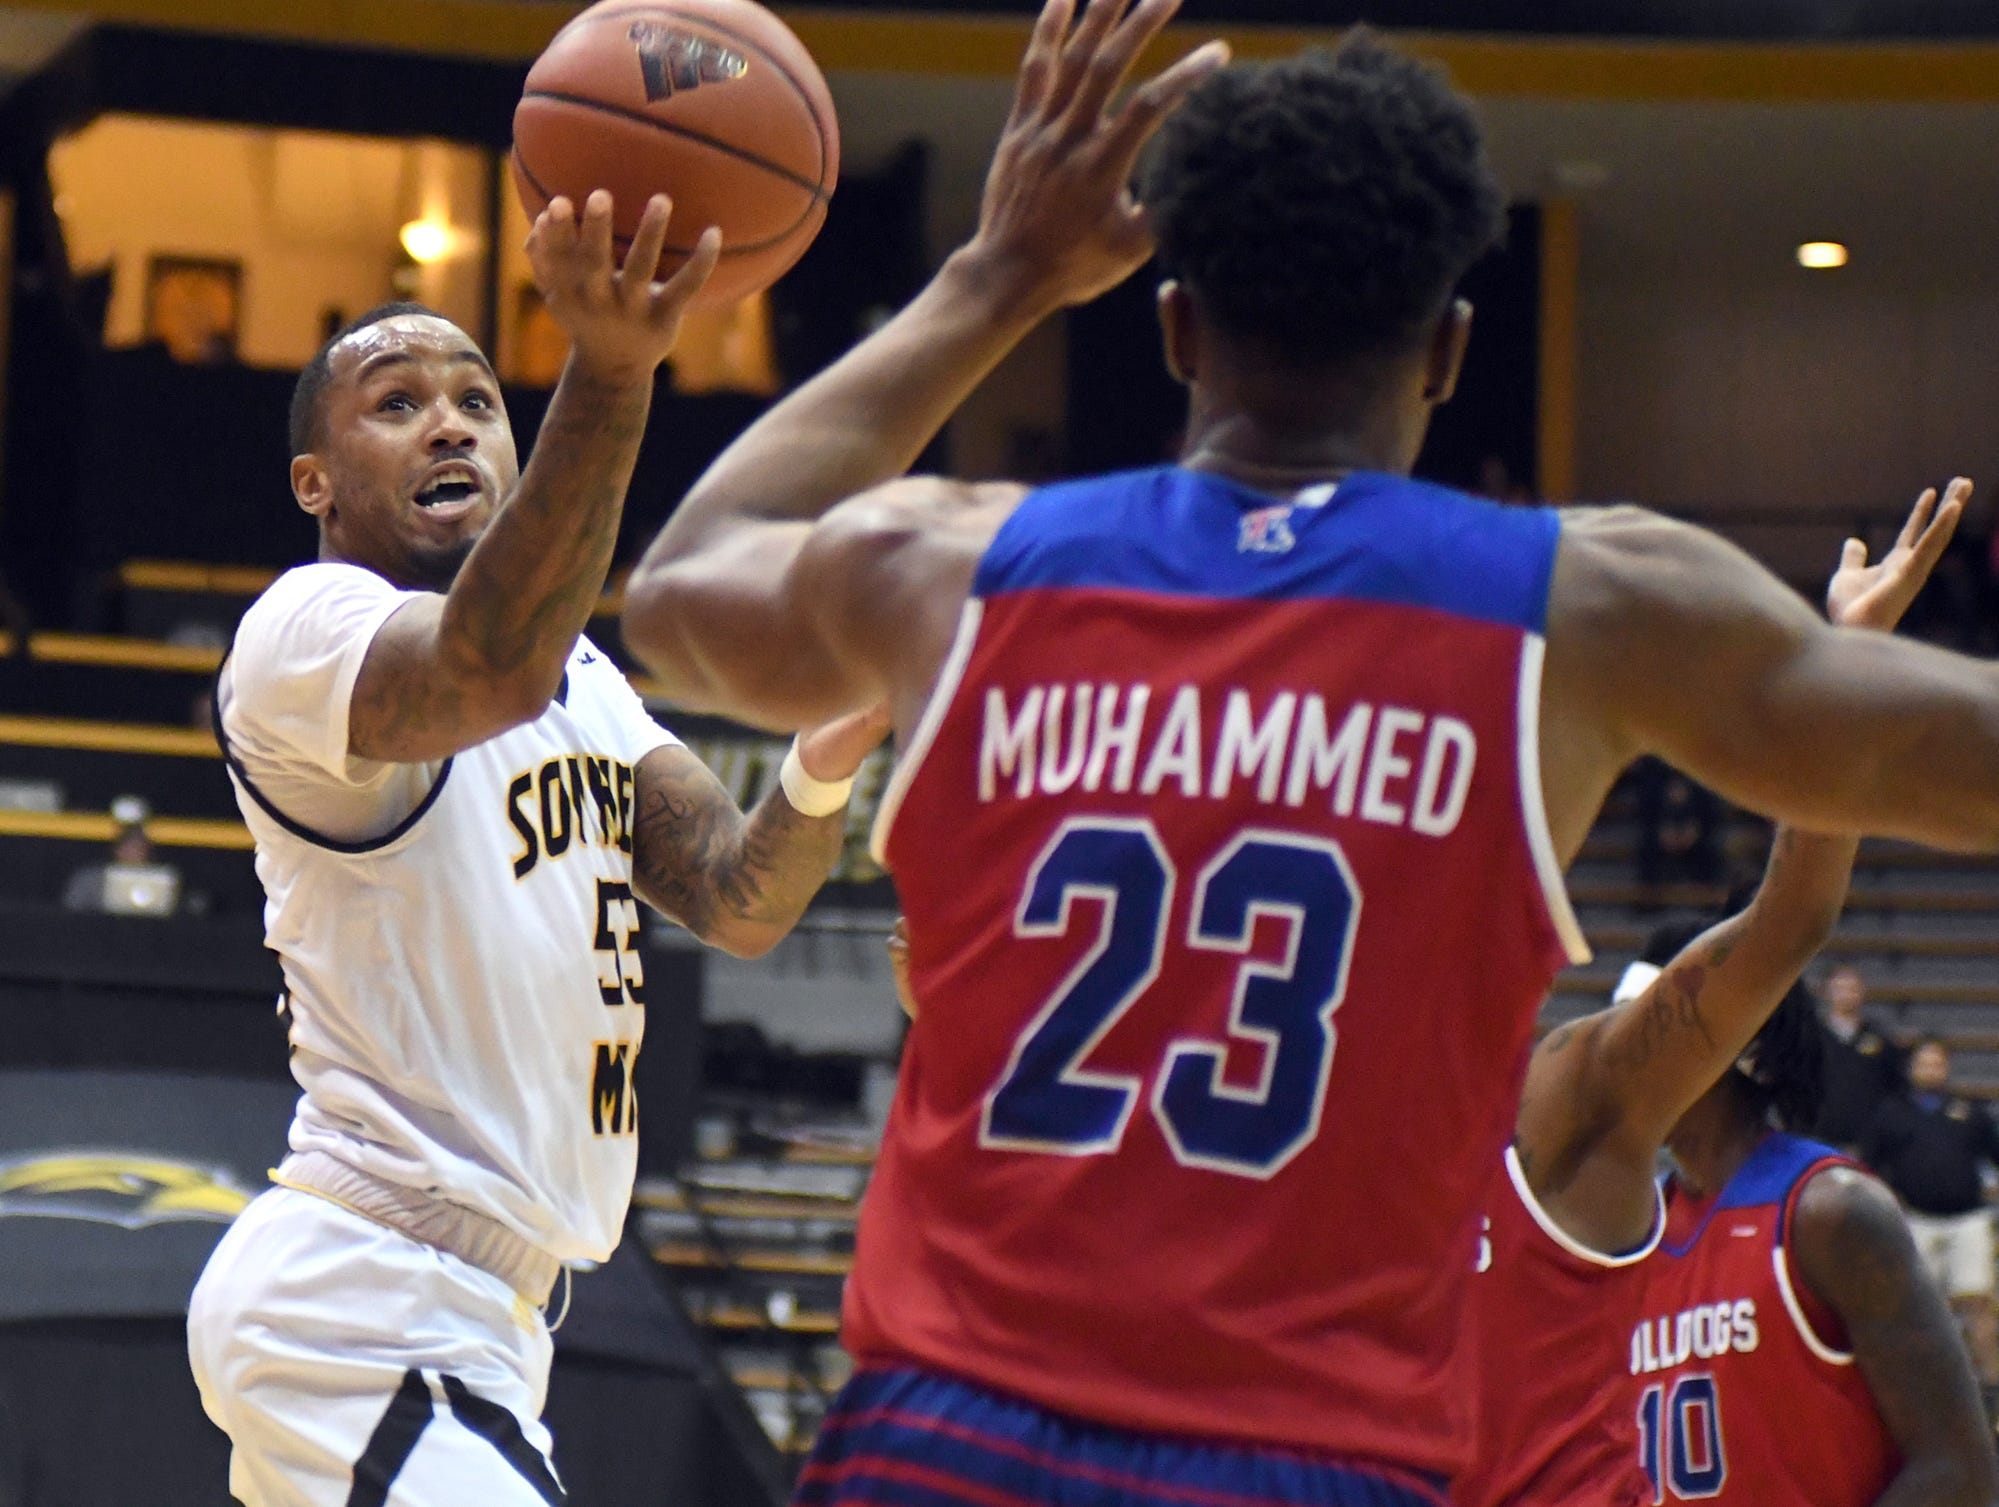 Southern Miss guard Tyree Griffin shoots over a defender in a game against Louisiana Tech in Reed Green Coliseum on Saturday, February 9, 2019.